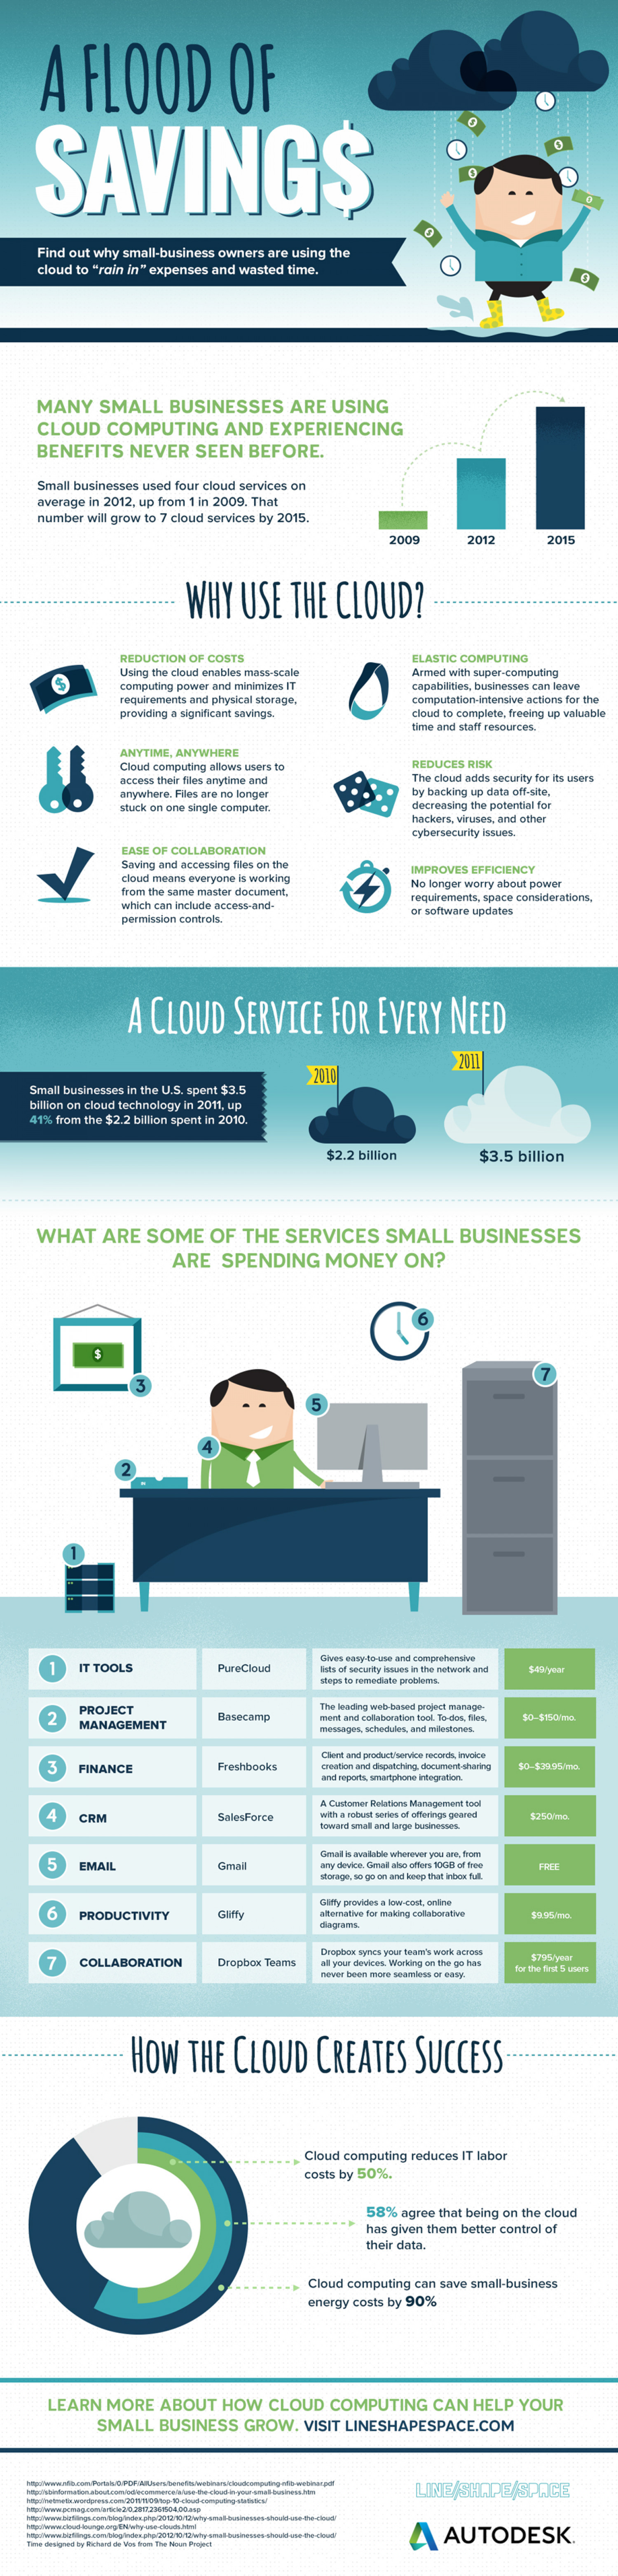 A Flood of Savings: Small Businesses and the Cloud Infographic